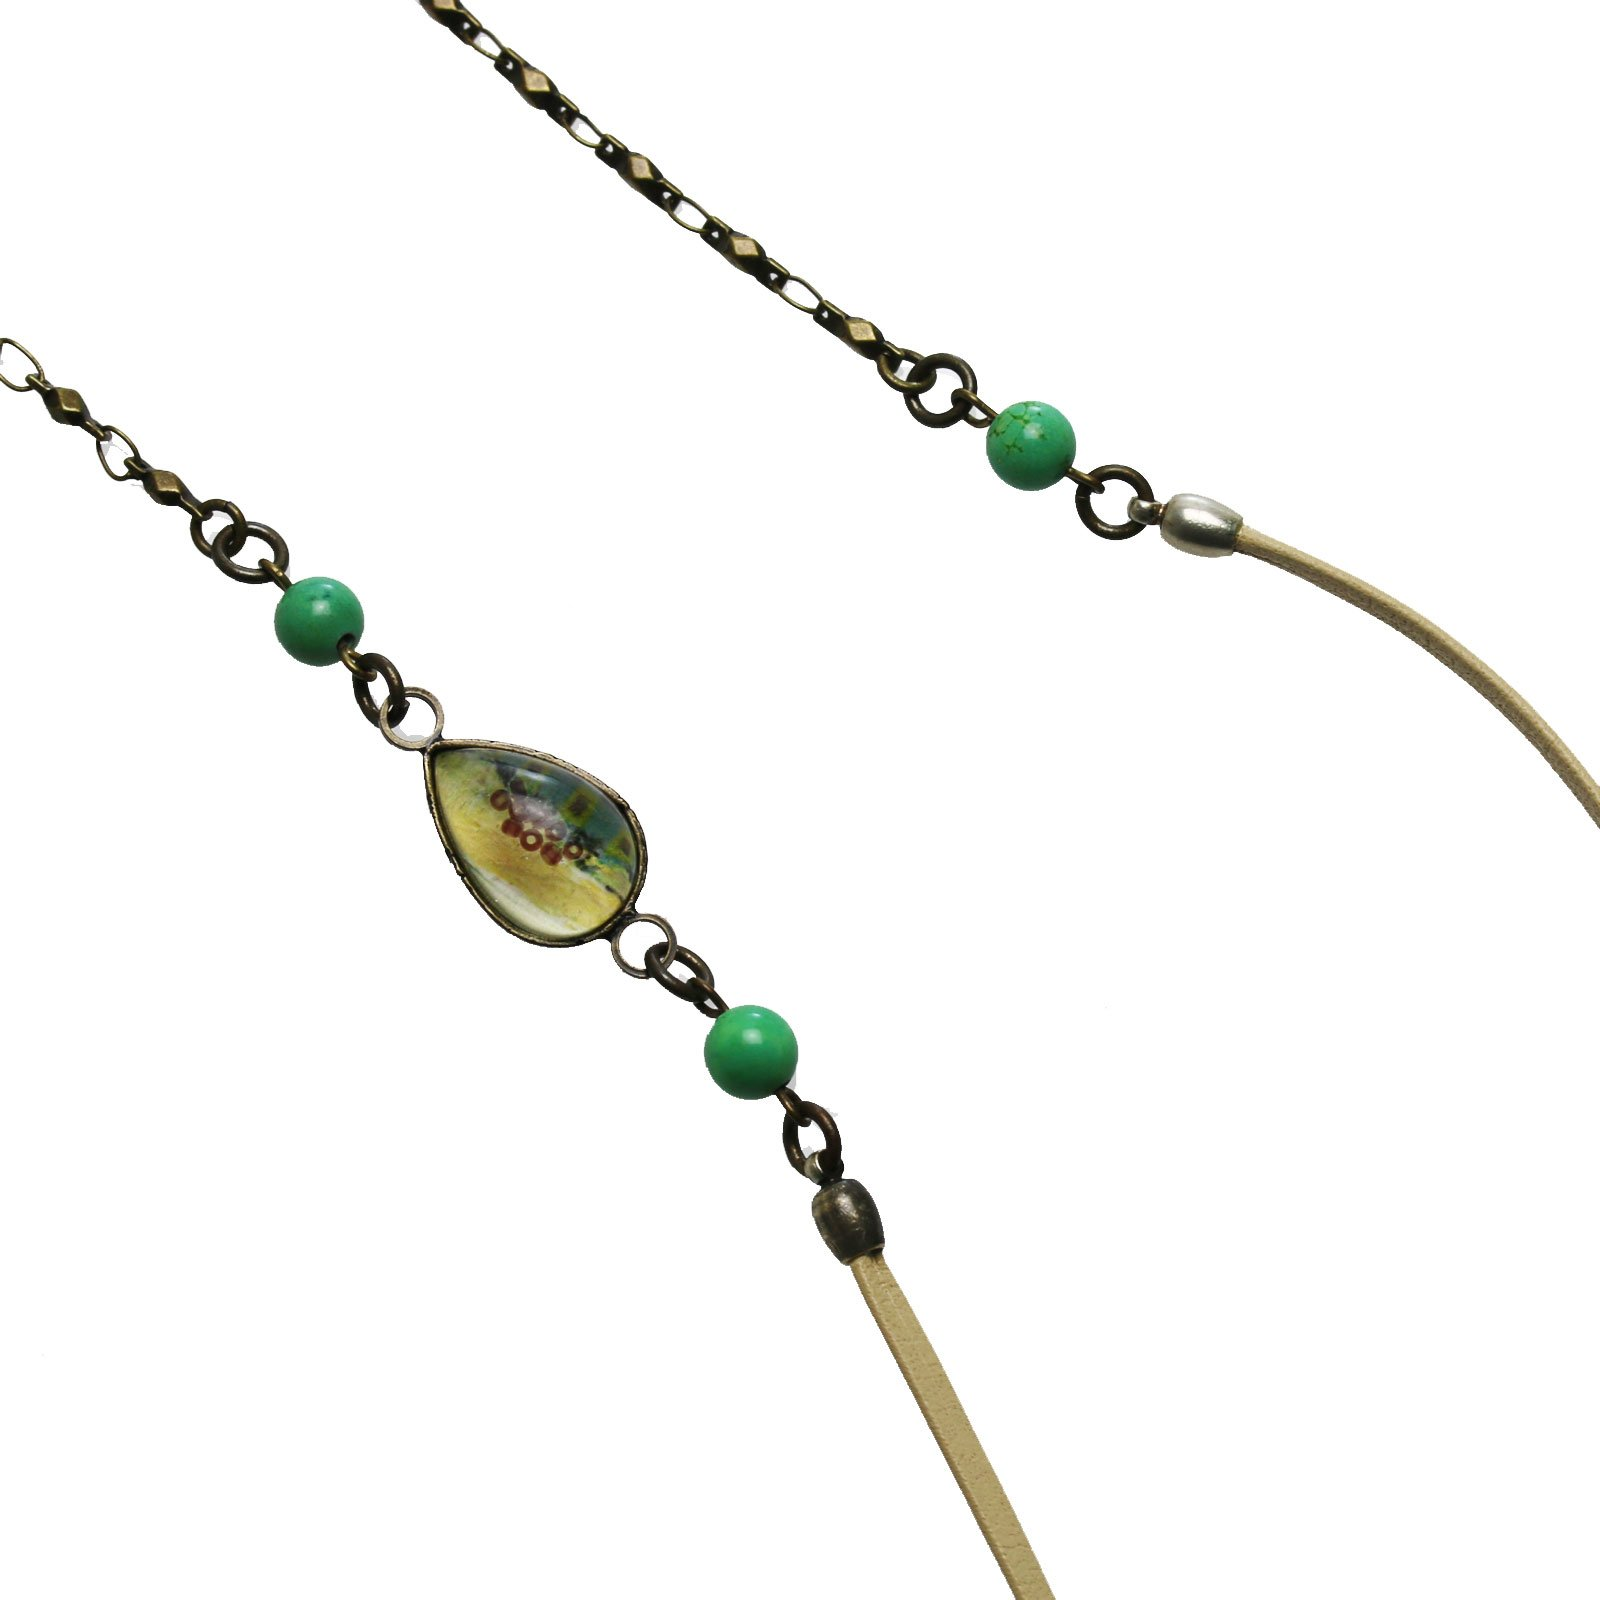 Tamarusan Glasses Chain Leather Strap Turquoise Green Unisex Glass Code by TAMARUSAN